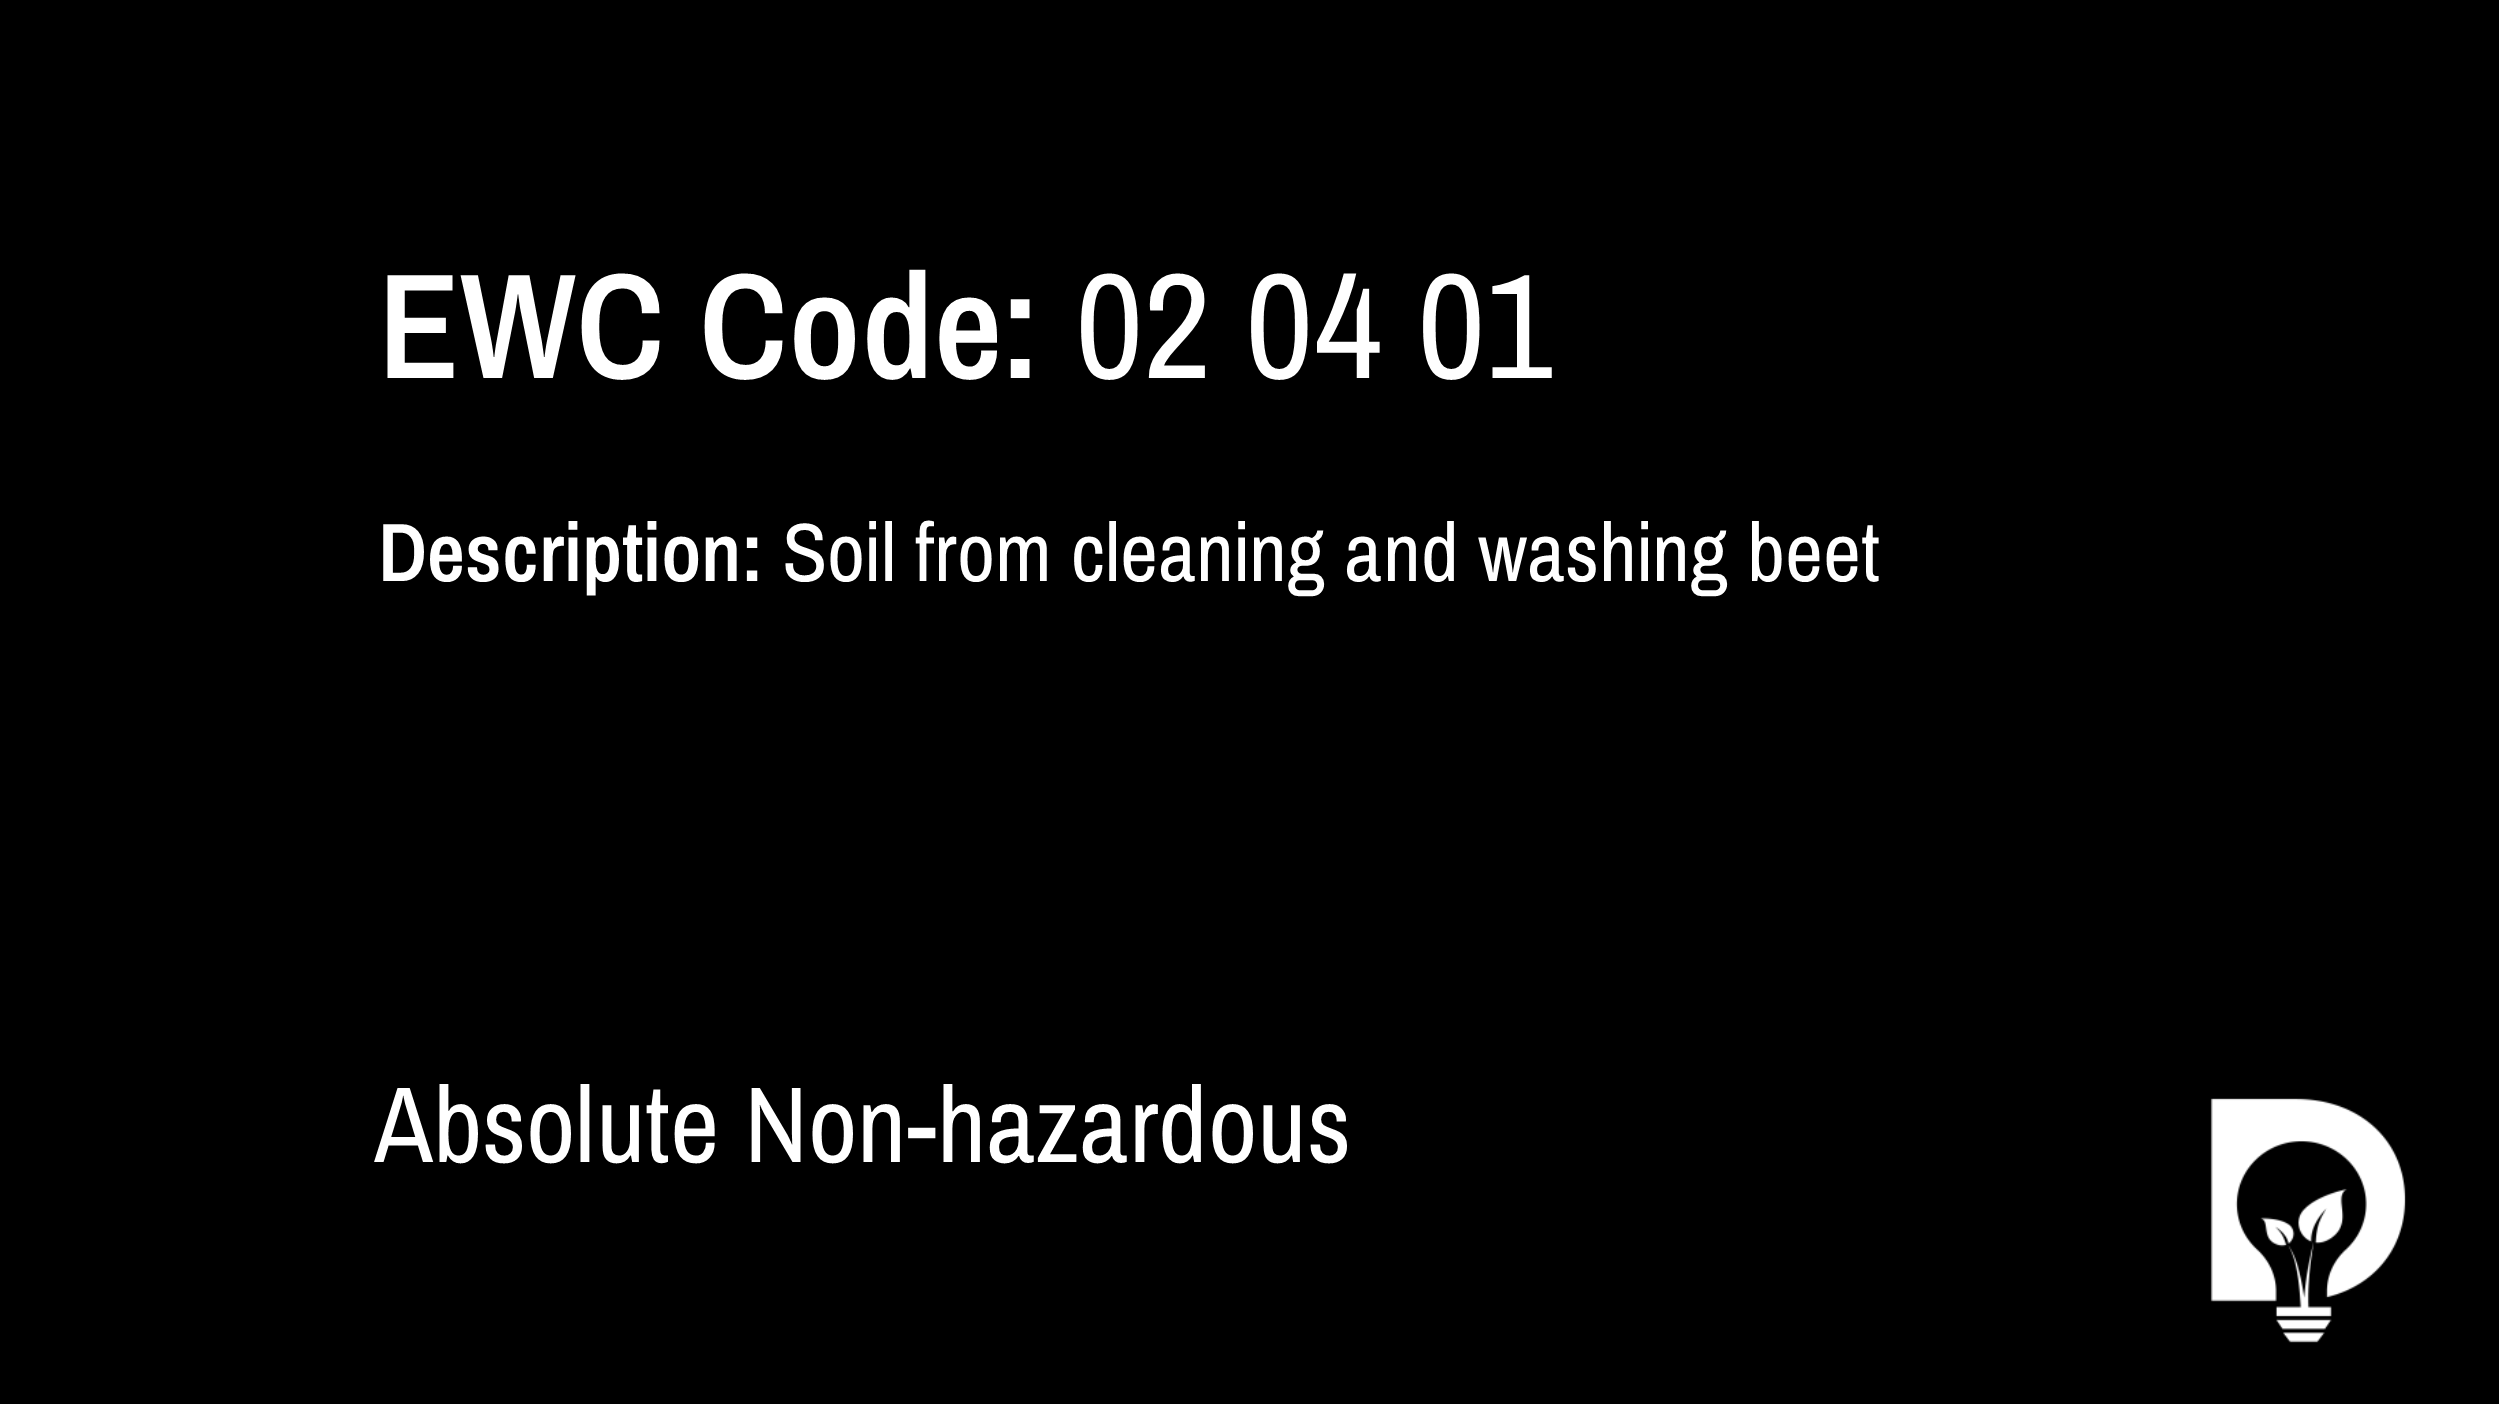 EWC Code: 02 04 01 - soil from cleaning and washing beet. Type: Absolute Non-hazardous. Image by Dsposal